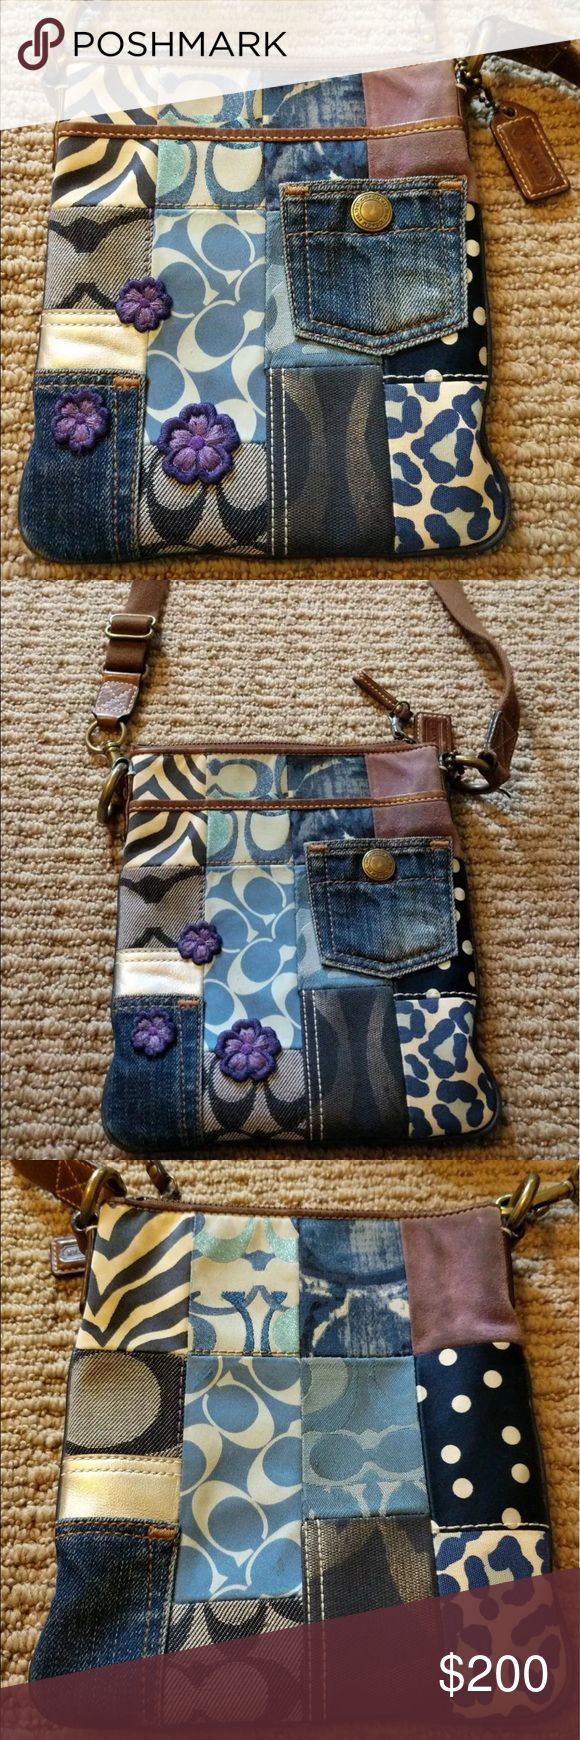 ISO Coach Denim Patchwork crossbody swing Tag if you see one or have one you'd be willing to sell.. I know these are really old now but I'm keeping my fingers crossed Coach Bags